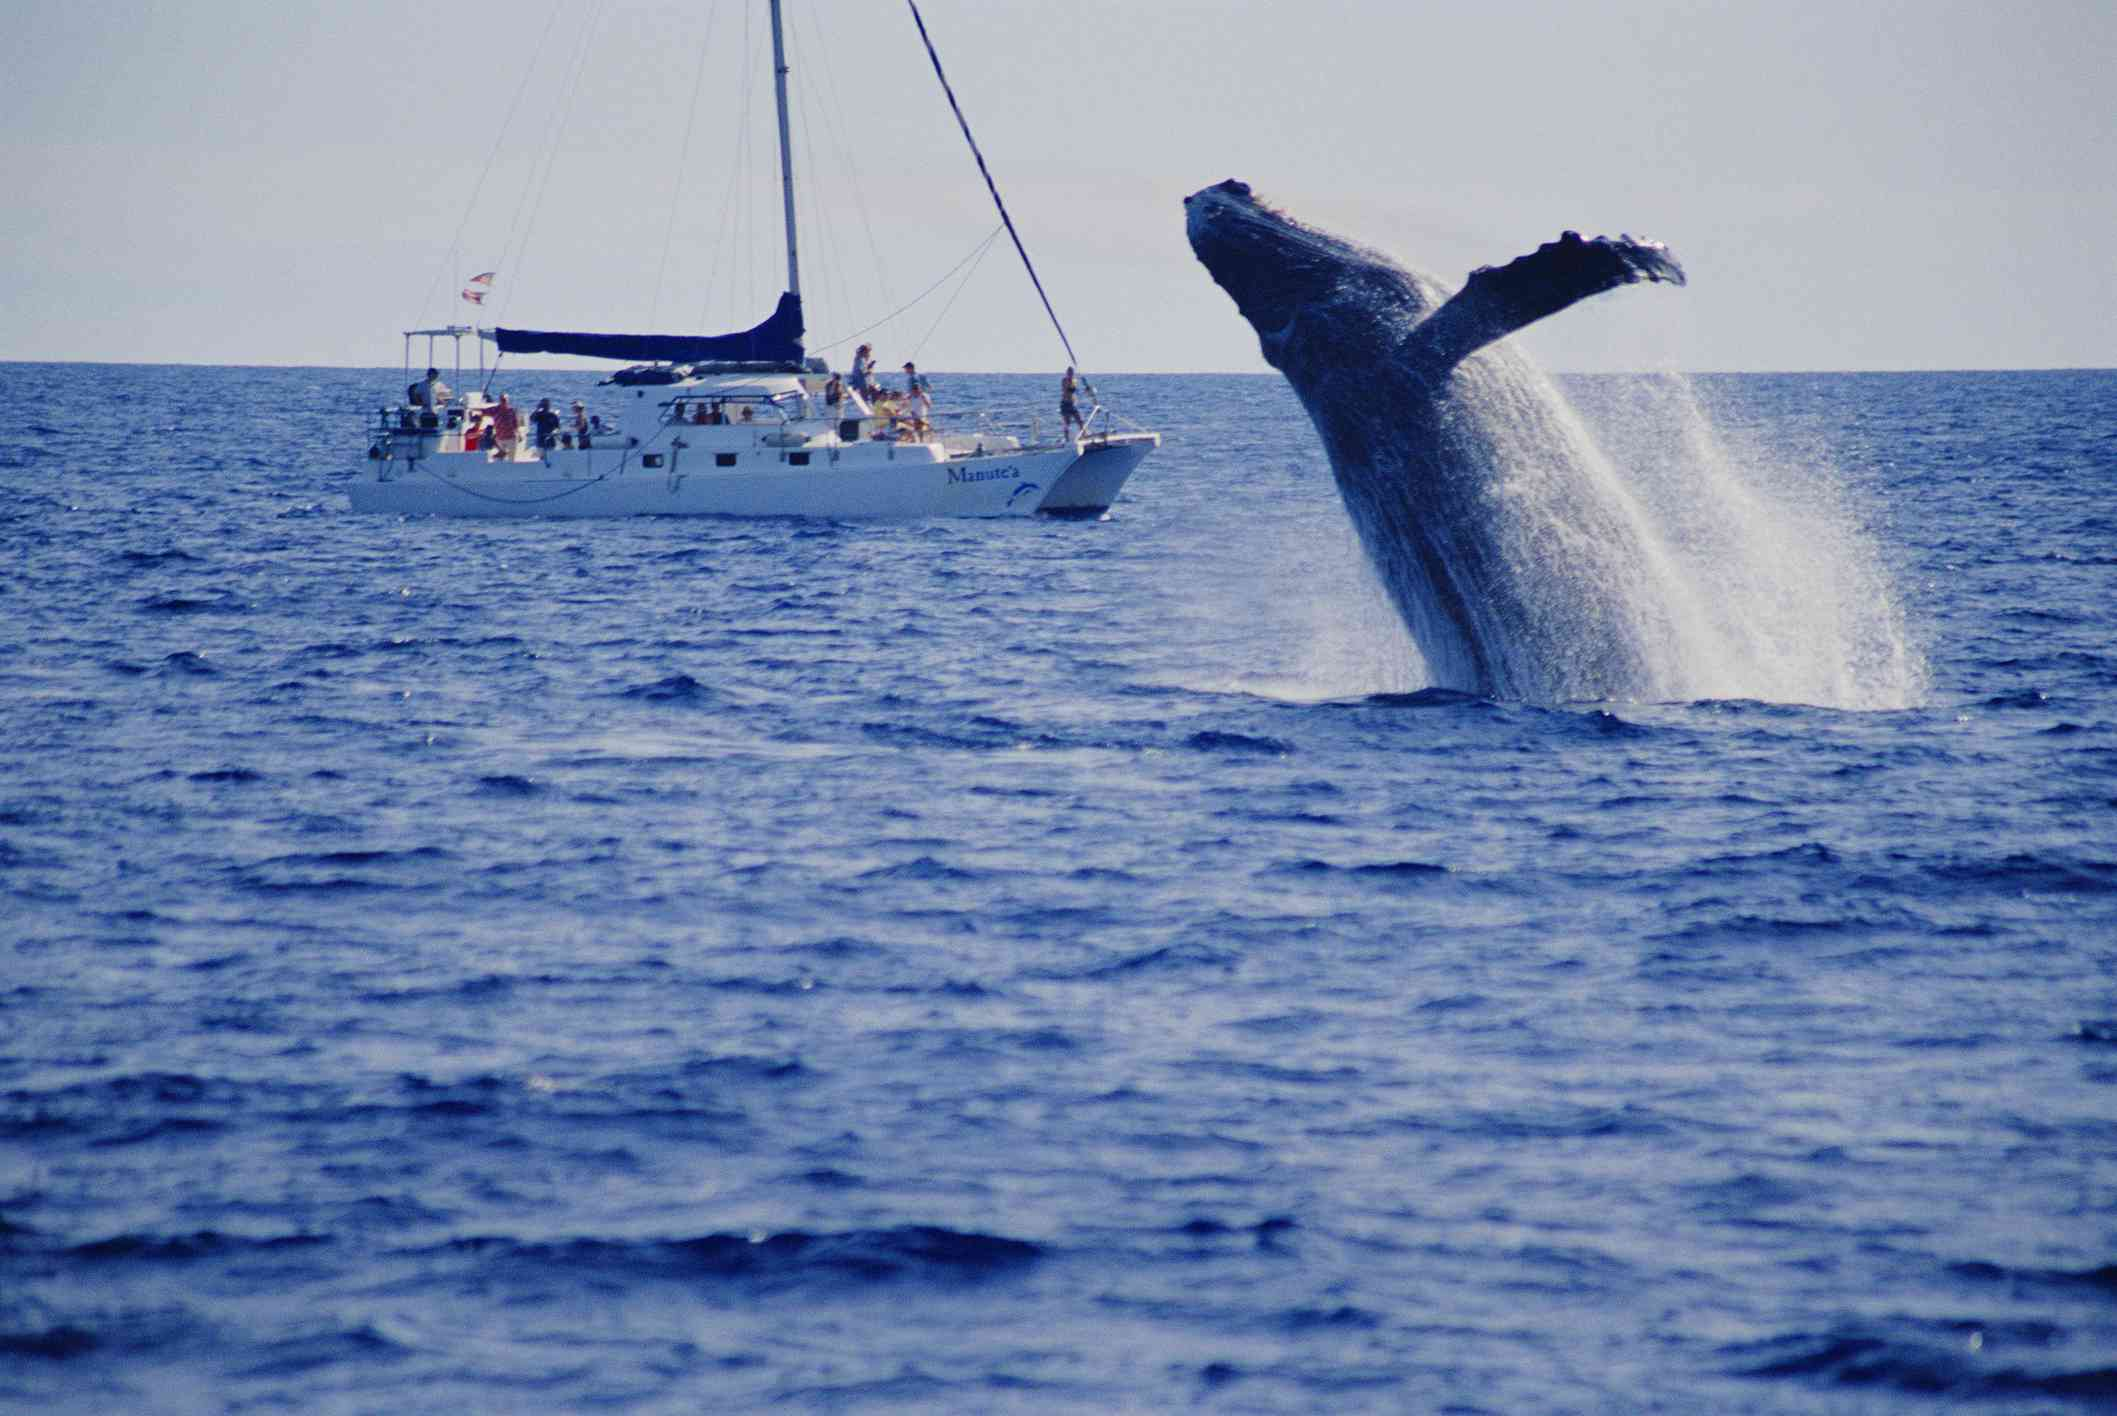 Maui, Lanai Channel, view of breaching whale w/ whale watching boat background (Megaptera novaeangliae)